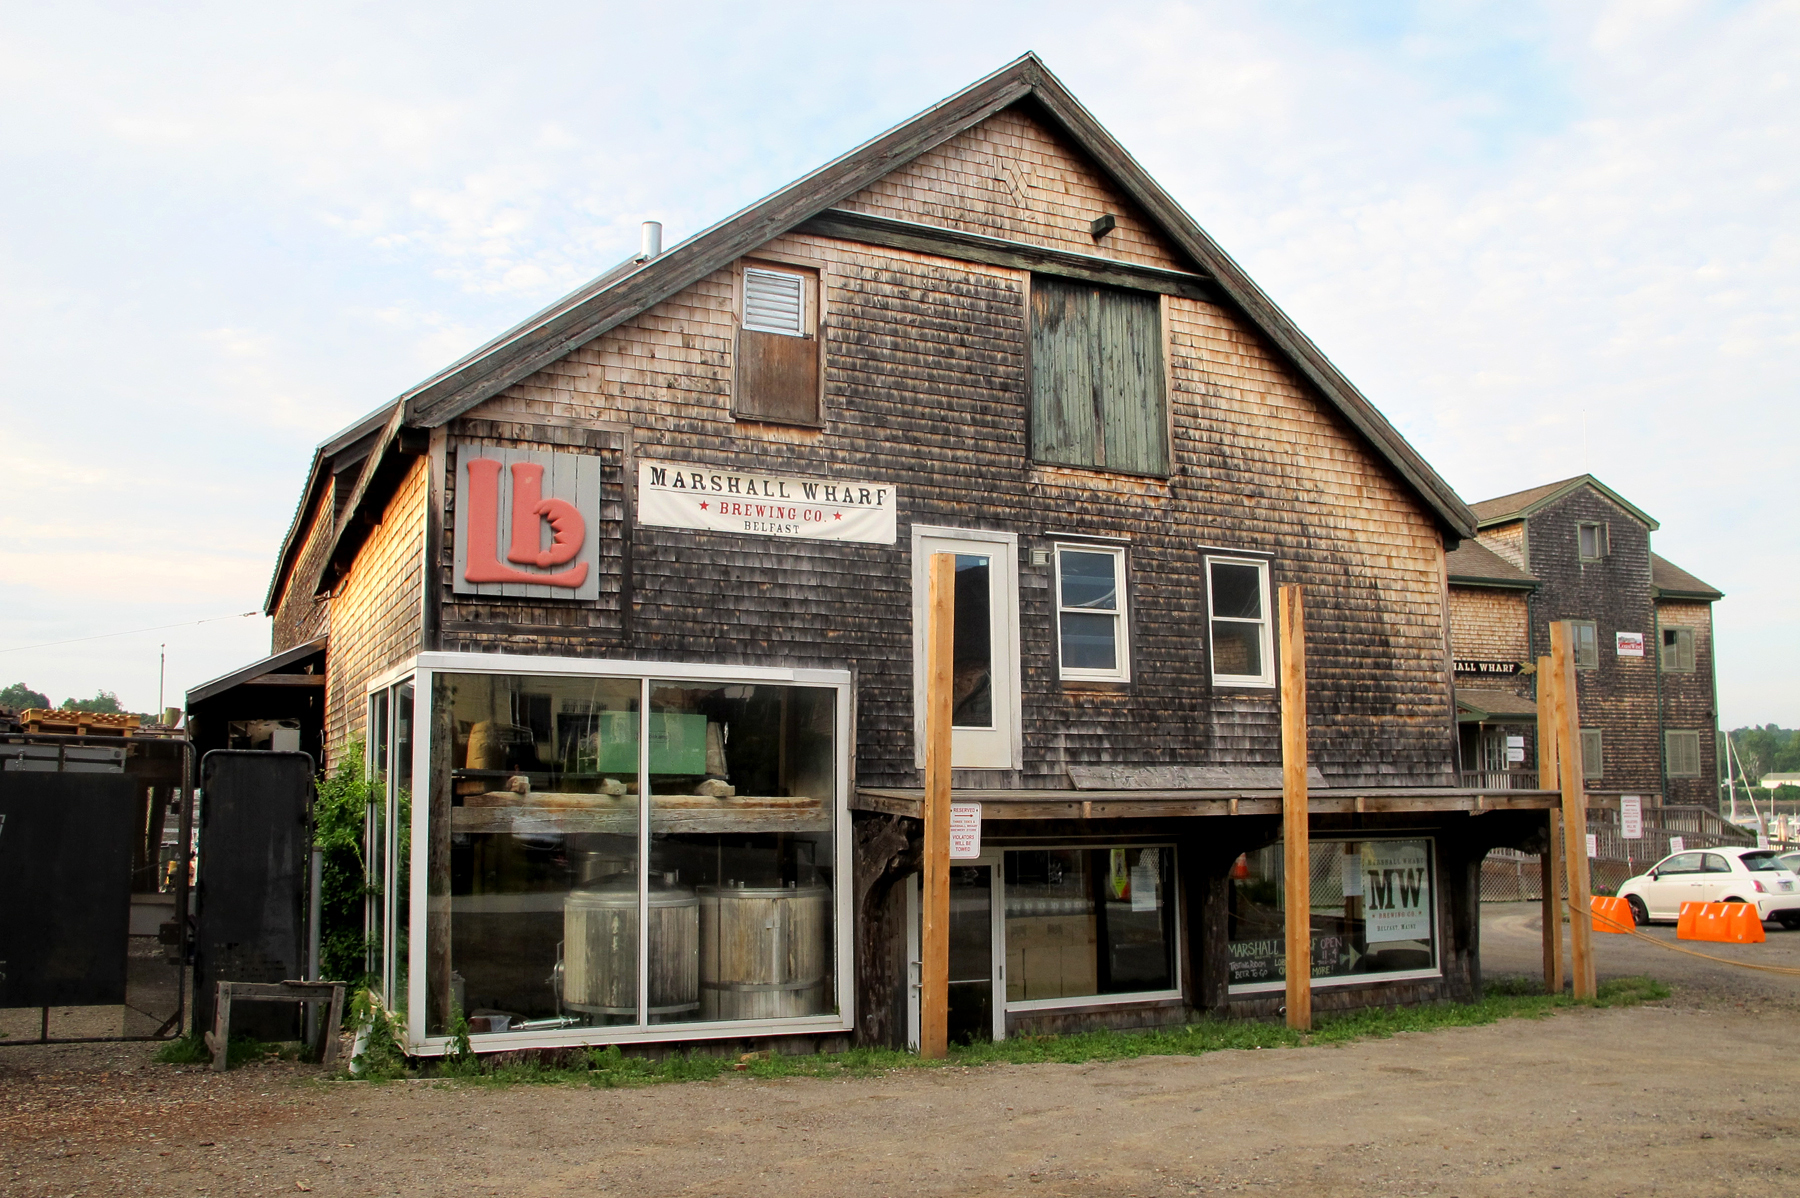 The Marshall Wharf Brewing Co. in Belfast, Maine. Photo: Jay Field/MPBN